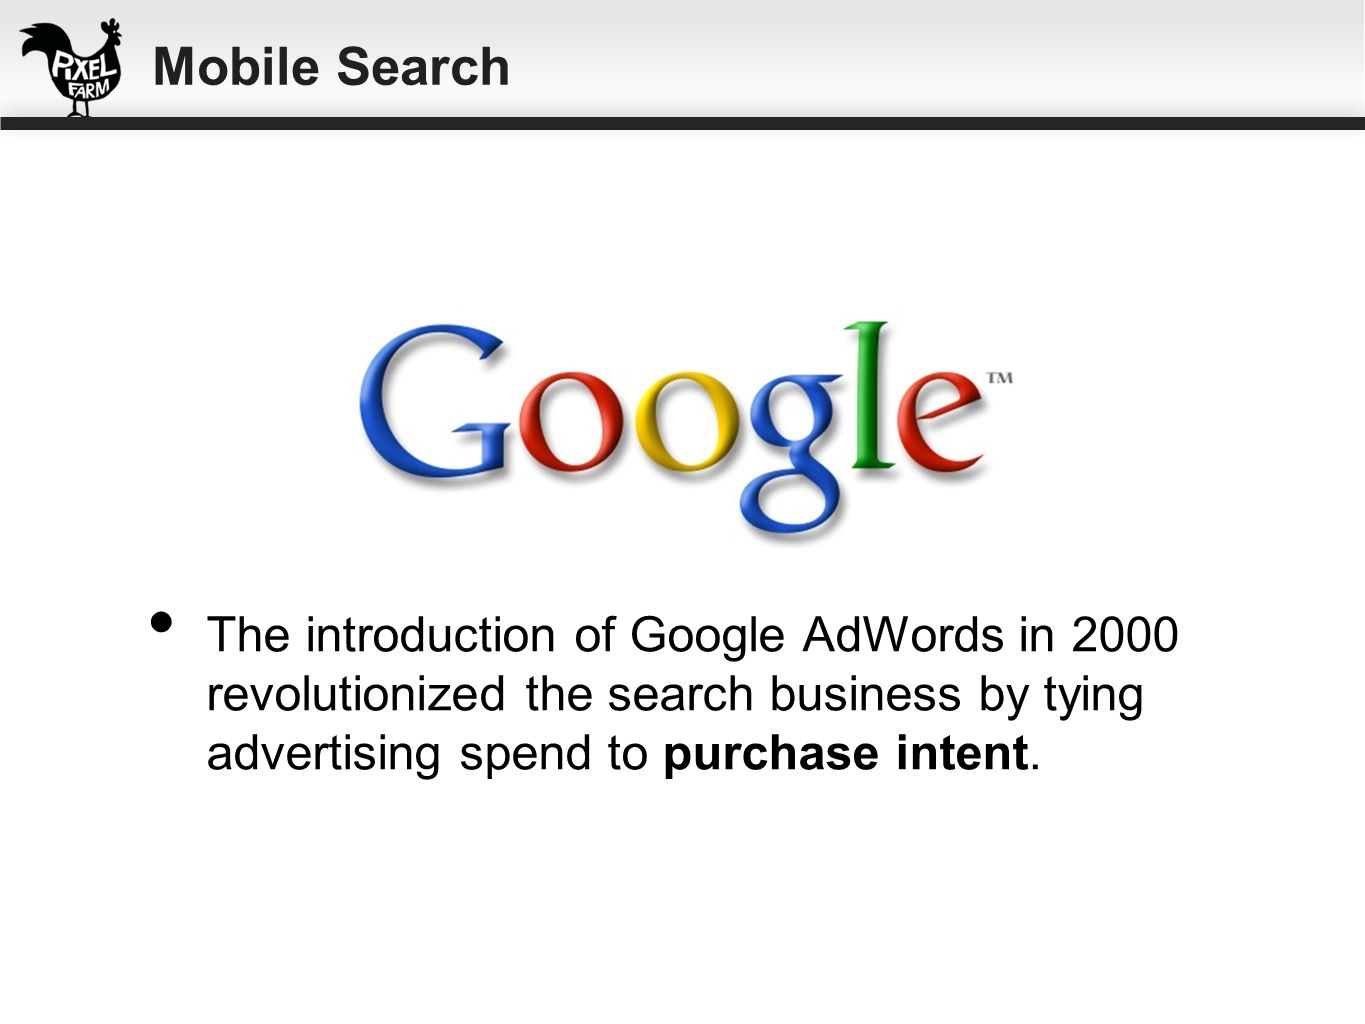 Mobile SearchThe introduction of Google AdWords in 2000 revolutionized the search business by tying advertising spend to purchase intent.